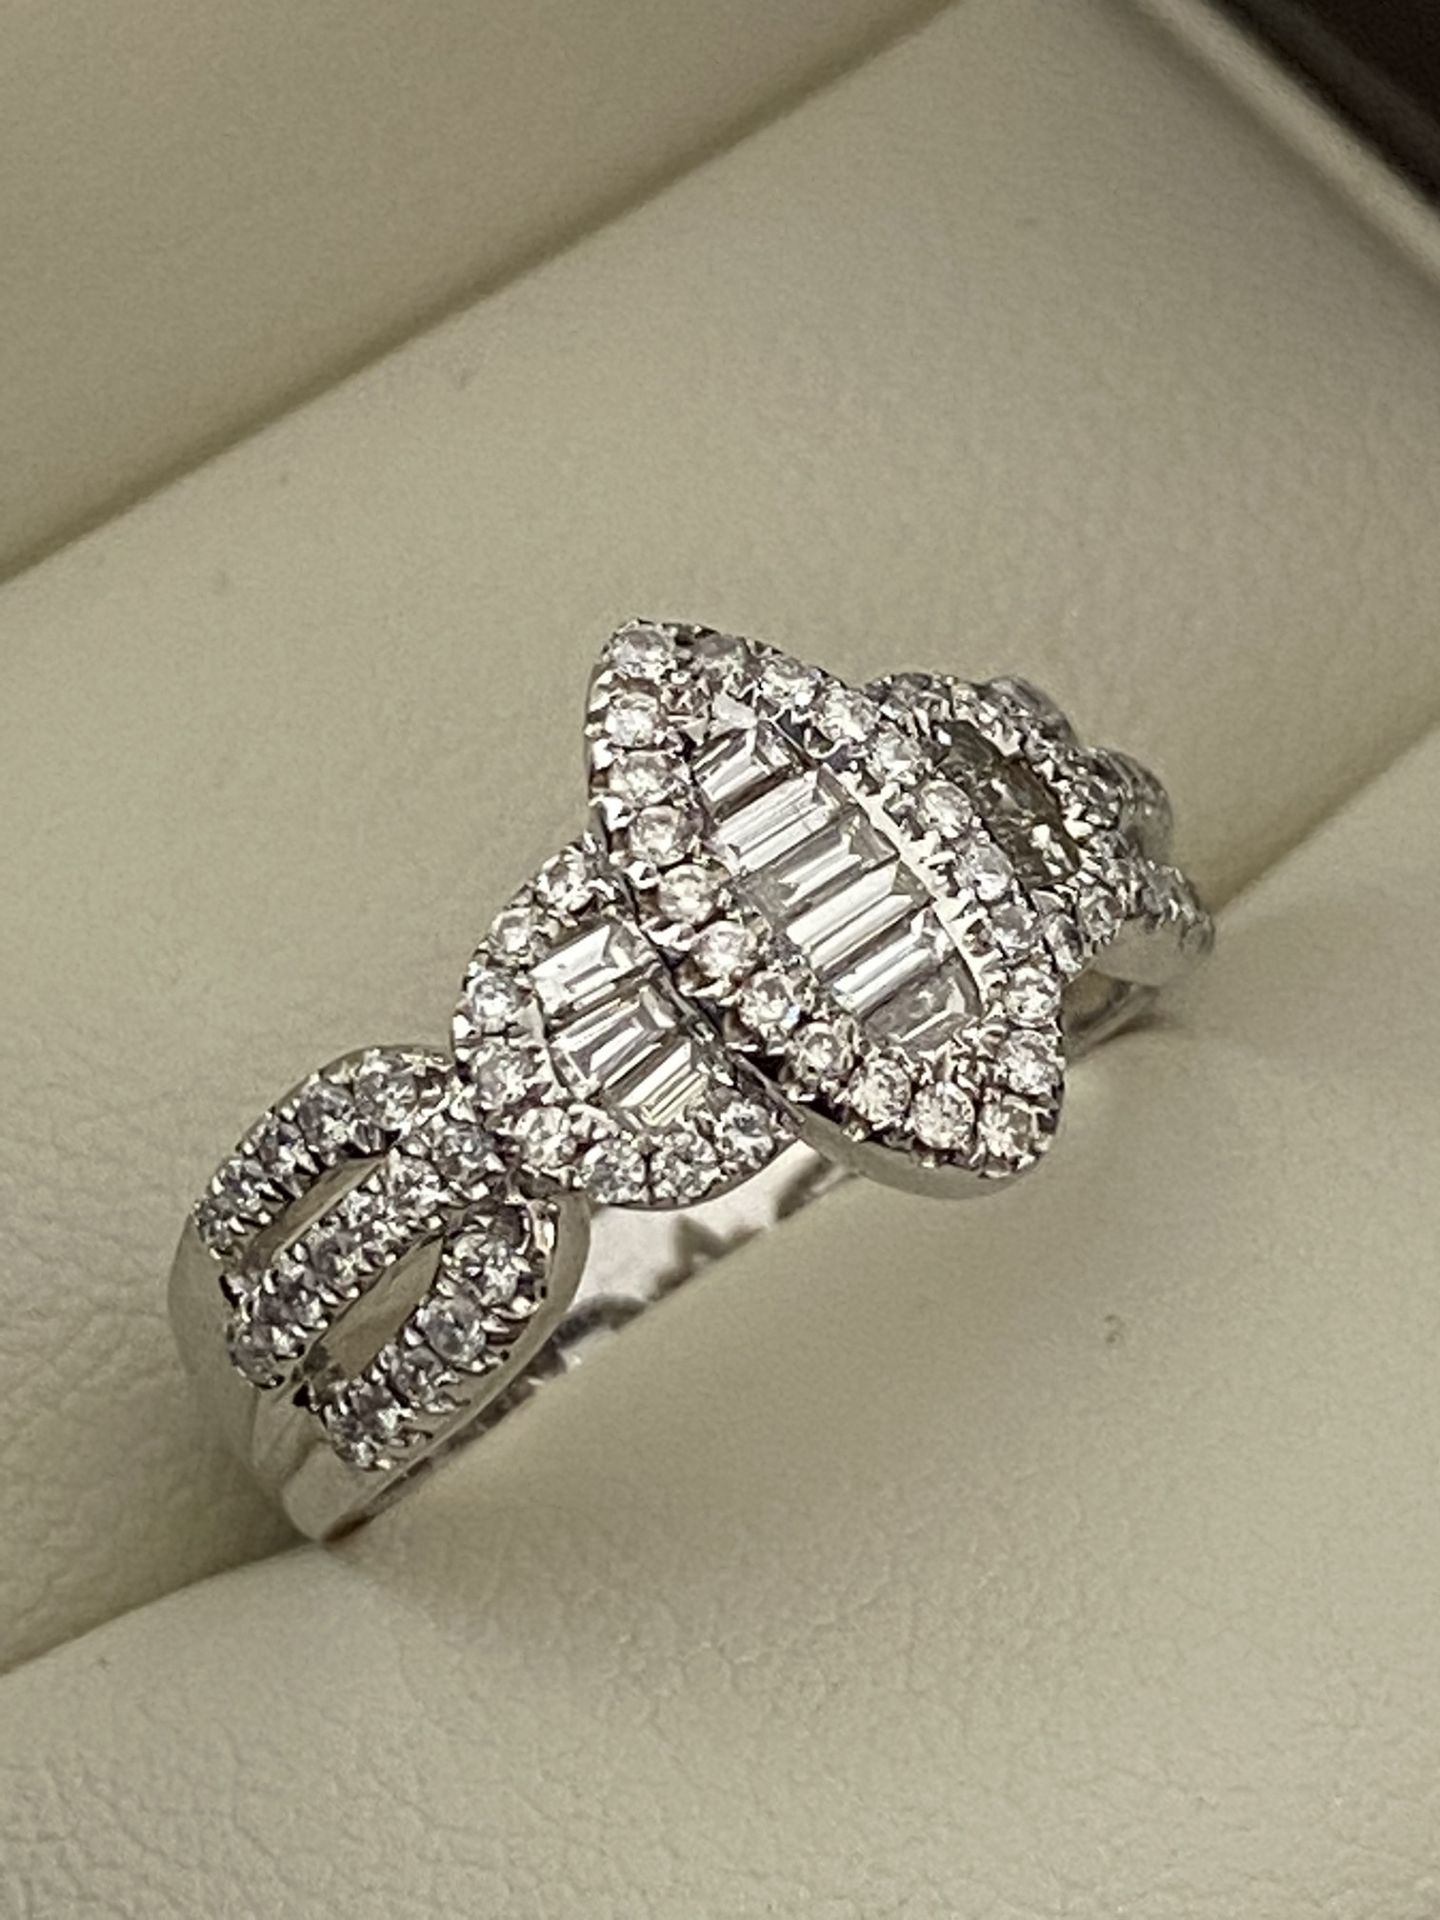 0.69ct DIAMOND MARQUISE SHAPED RING SET IN WHITE GOLD - Image 6 of 6